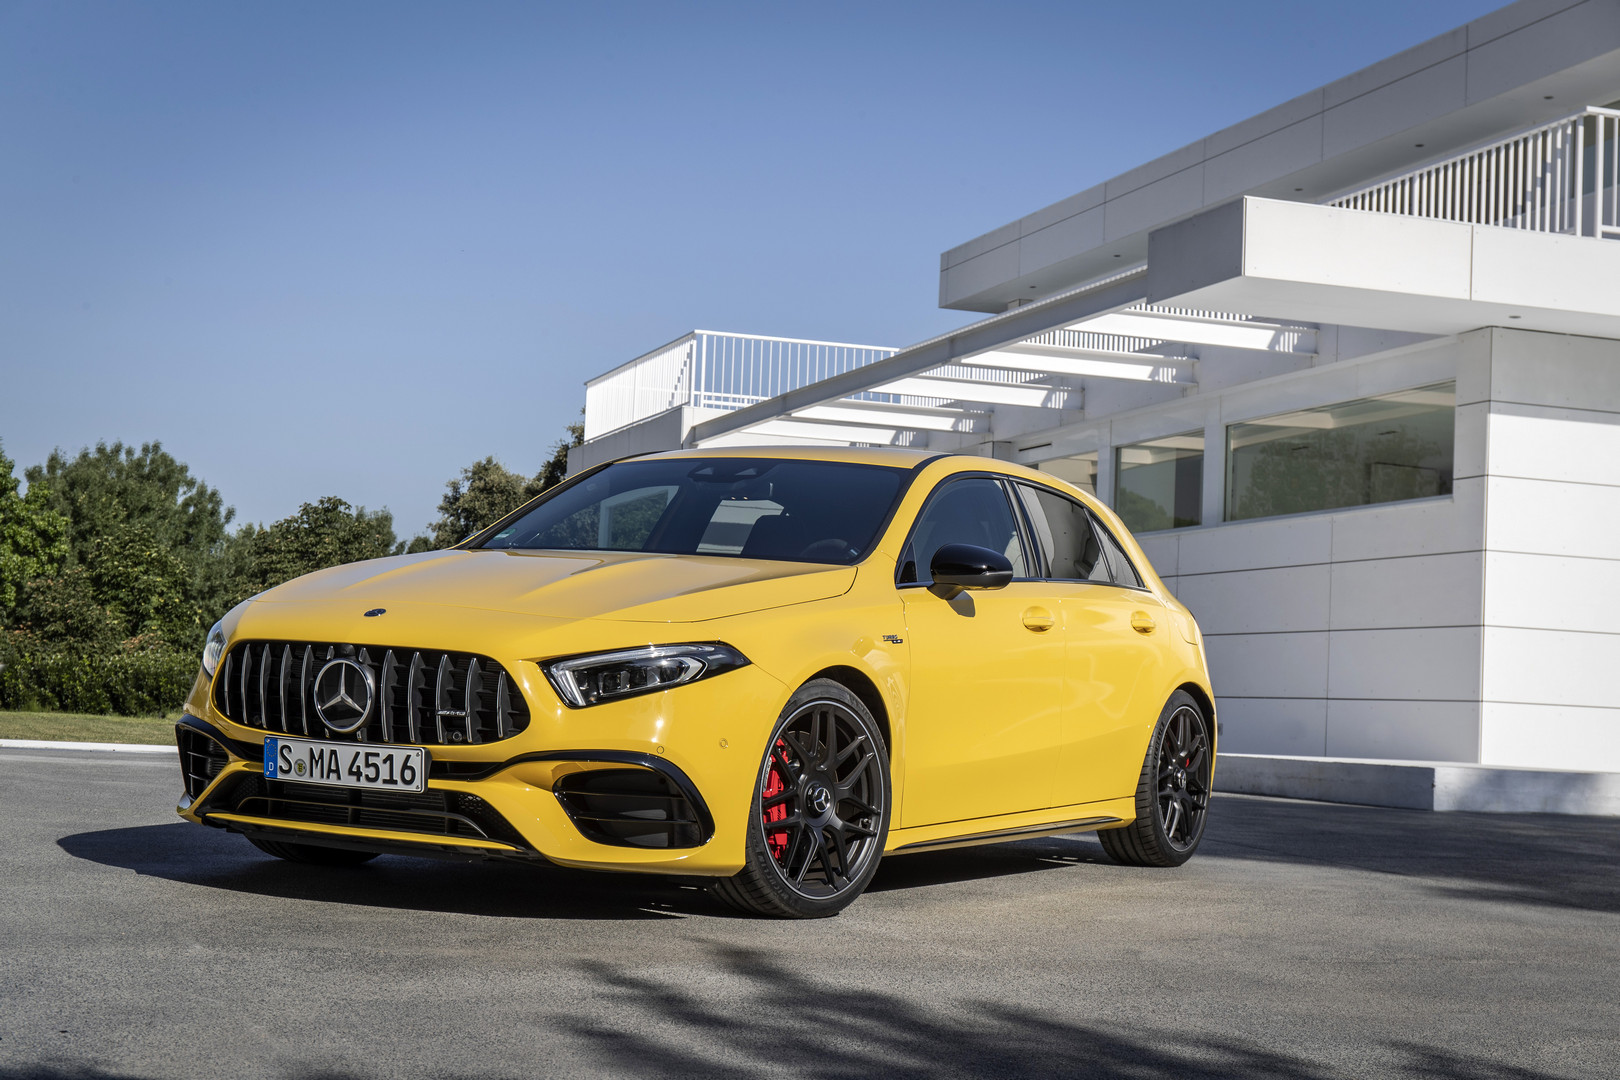 Sun Yellow Mercedes-AMG A45 S